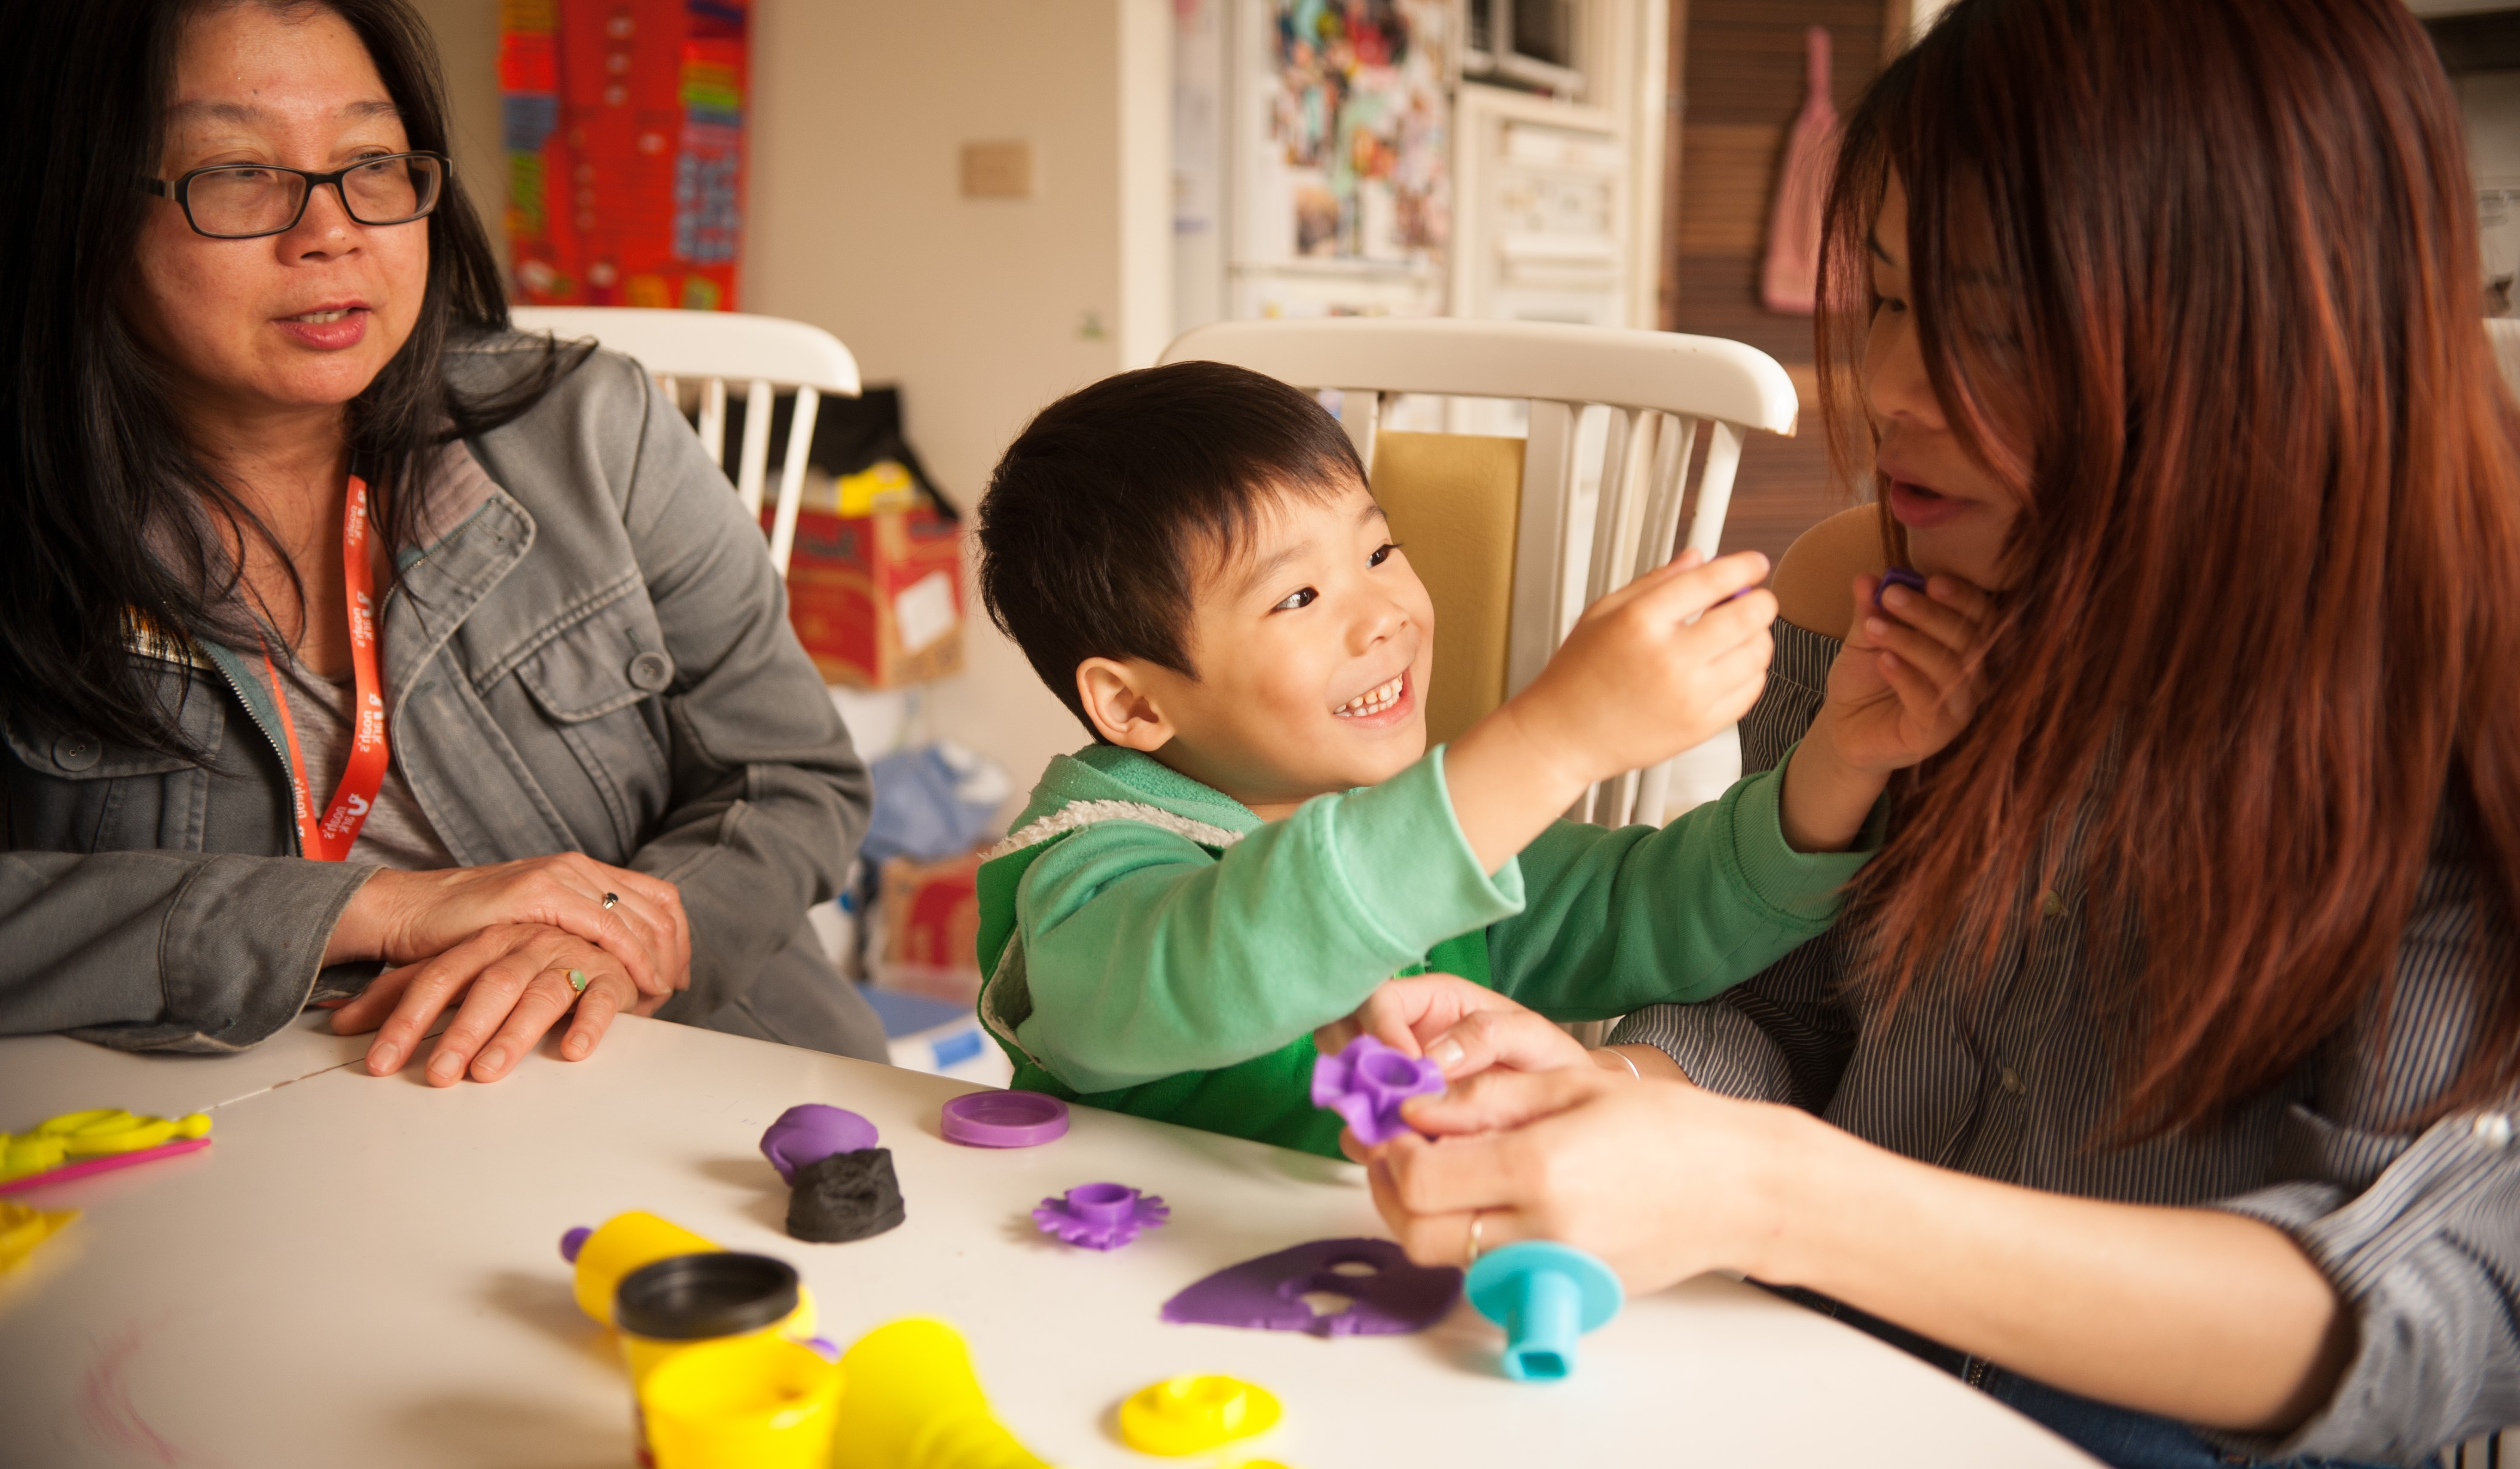 Young boy plays with his mum and therapist at the table